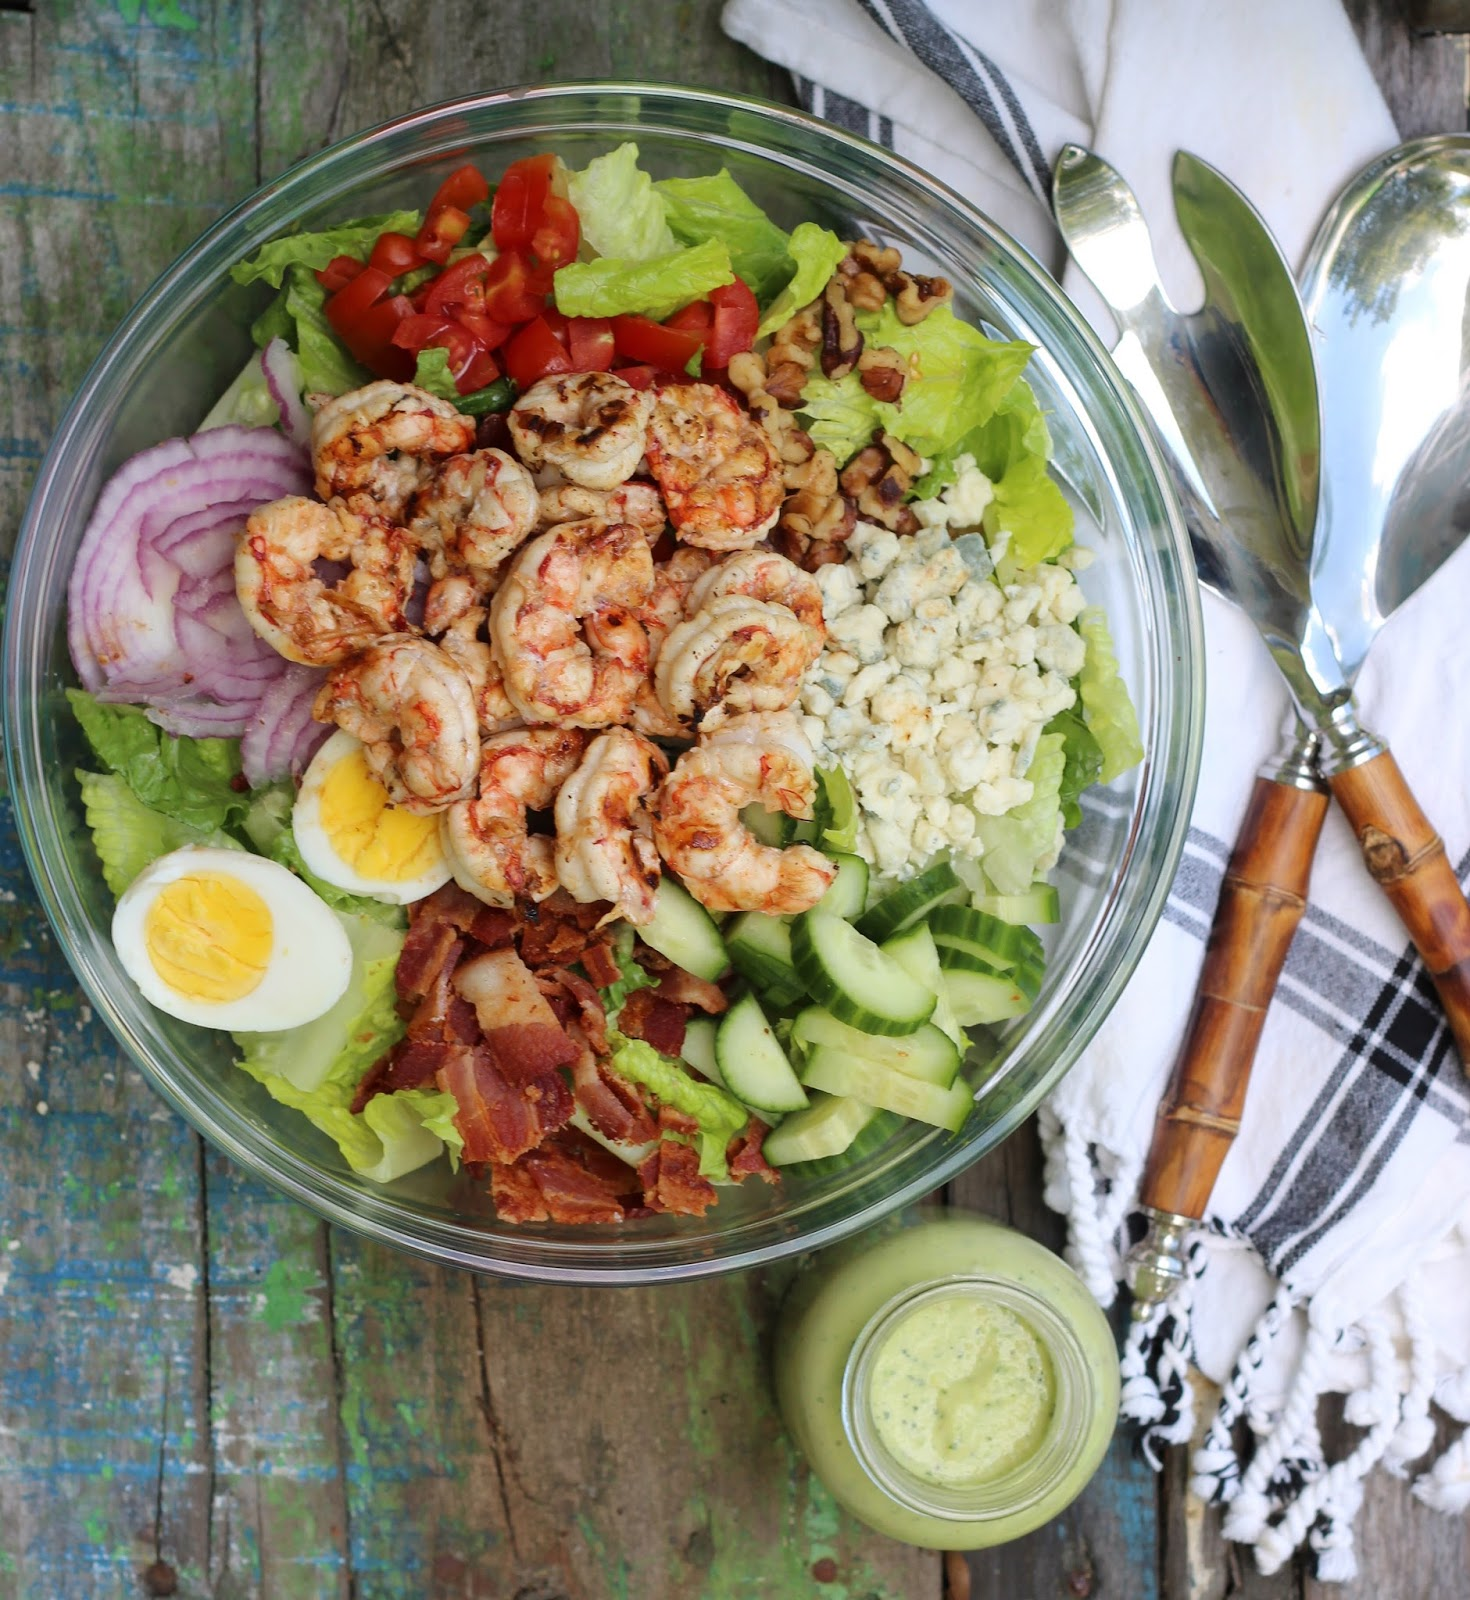 Grilled Shrimp Chopped Salad with Creamy Avocado Dressing